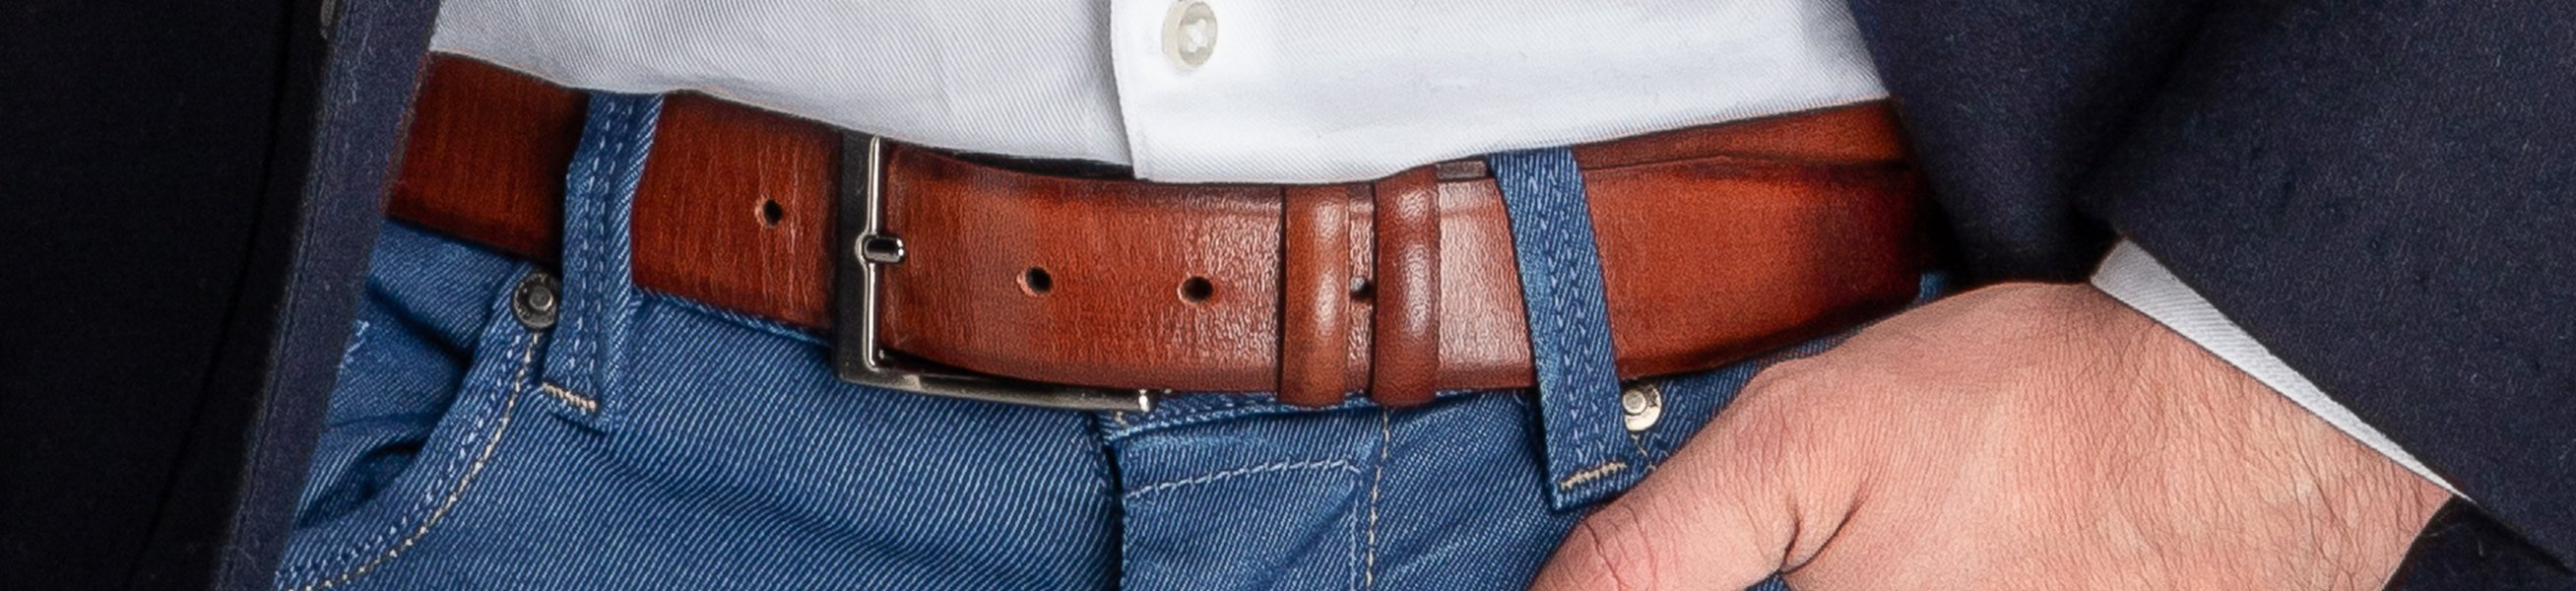 Men\'s belts at Suitable ✔ Different colours and brands ✔ Brands like Profuomo, Suitable Private Label and more ✔ Suede or Leather belts ✔ Shop online